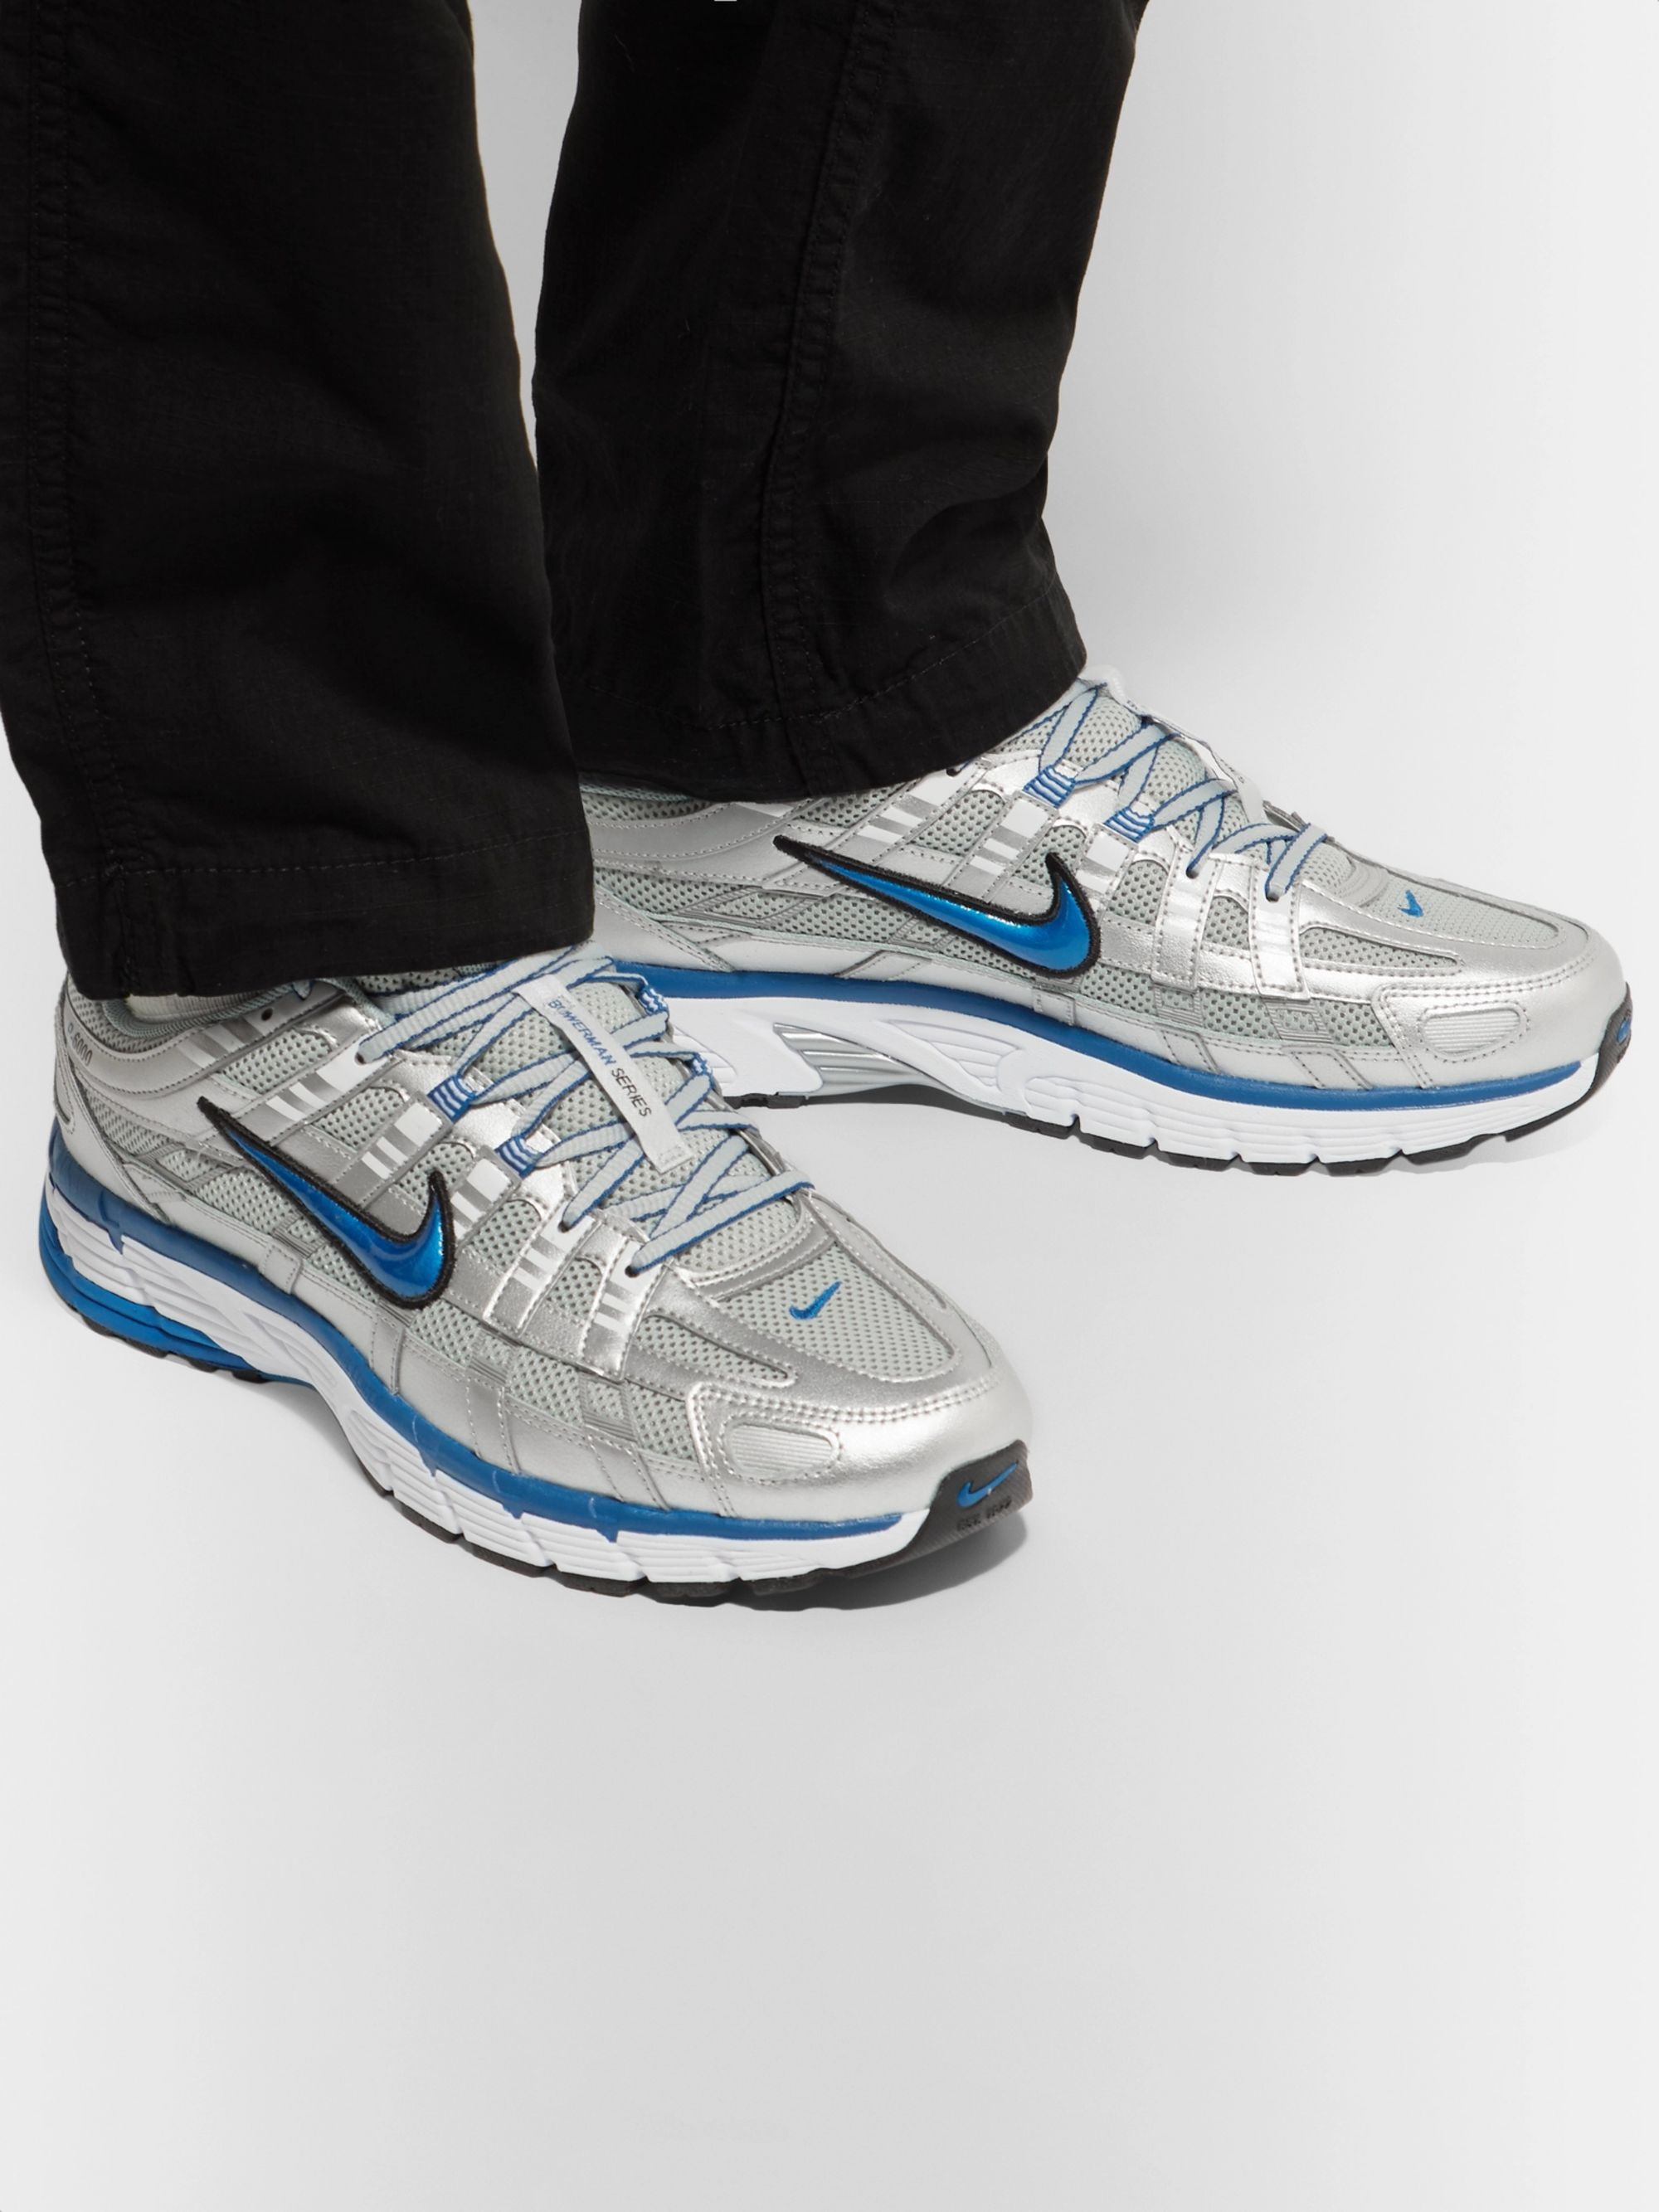 Shoes Nike P 6000 Metallic SilverTeam Royal